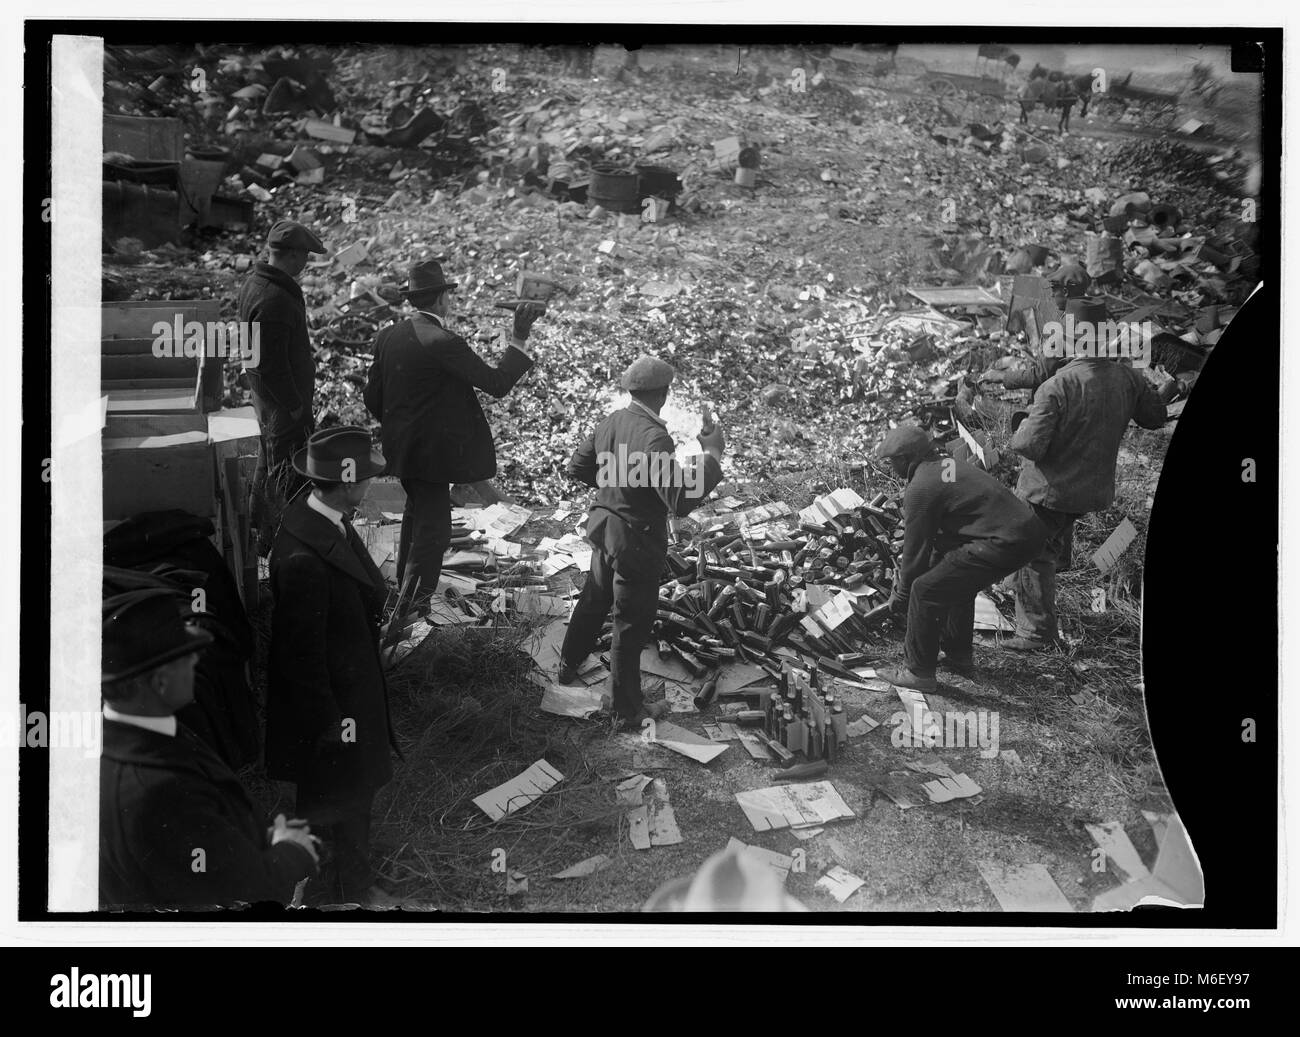 Federal agents destroying bottles of liquor during Prohibition, 11/20/1923. - Stock Image